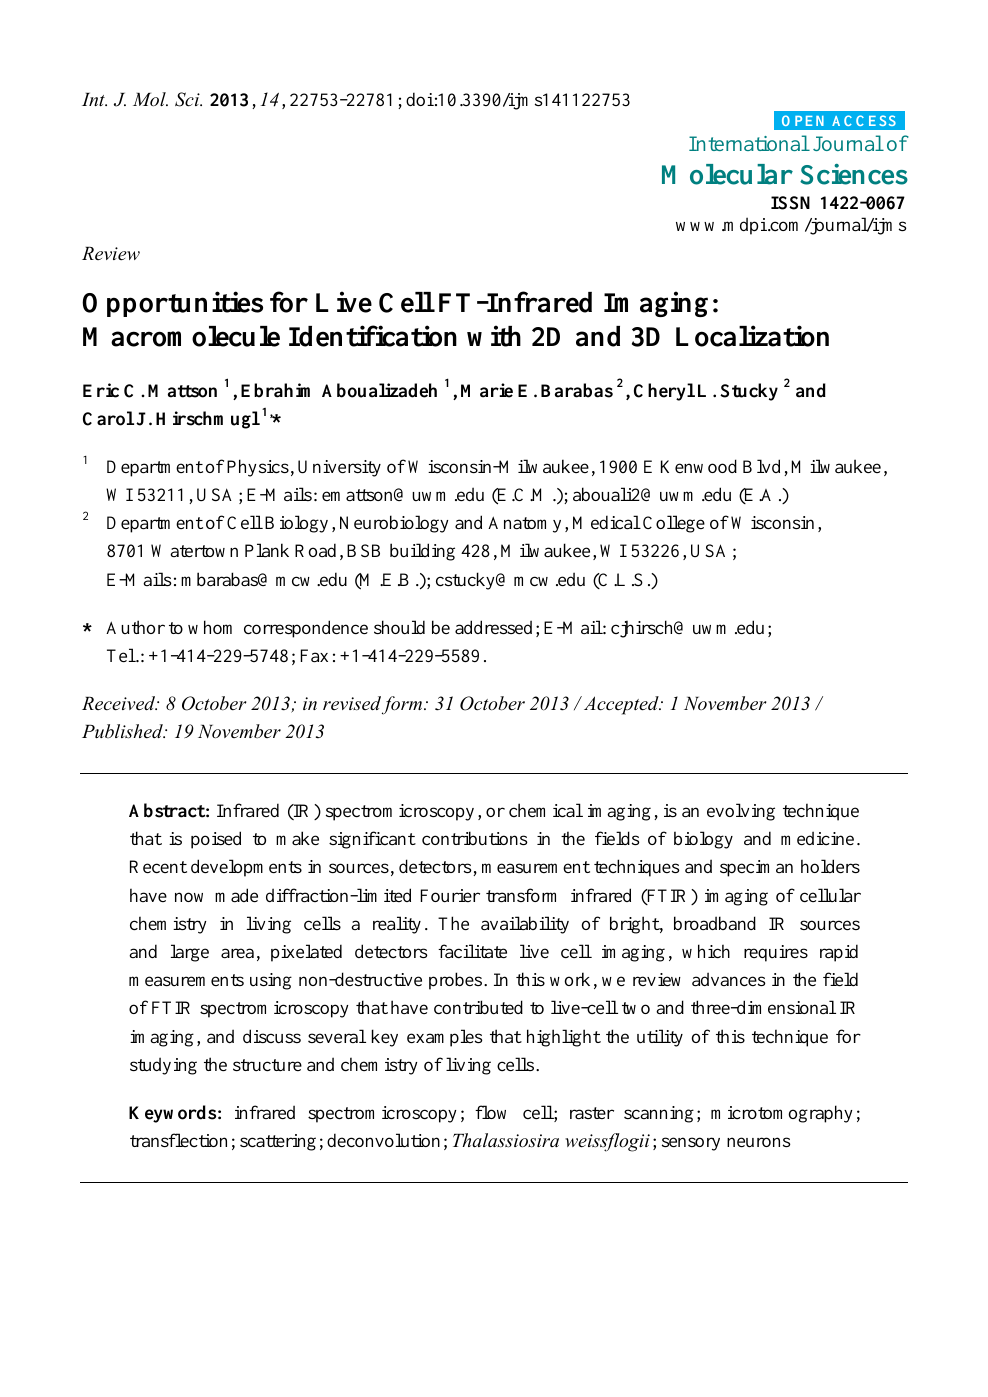 Opportunities for Live Cell FT-Infrared Imaging: Macromolecule